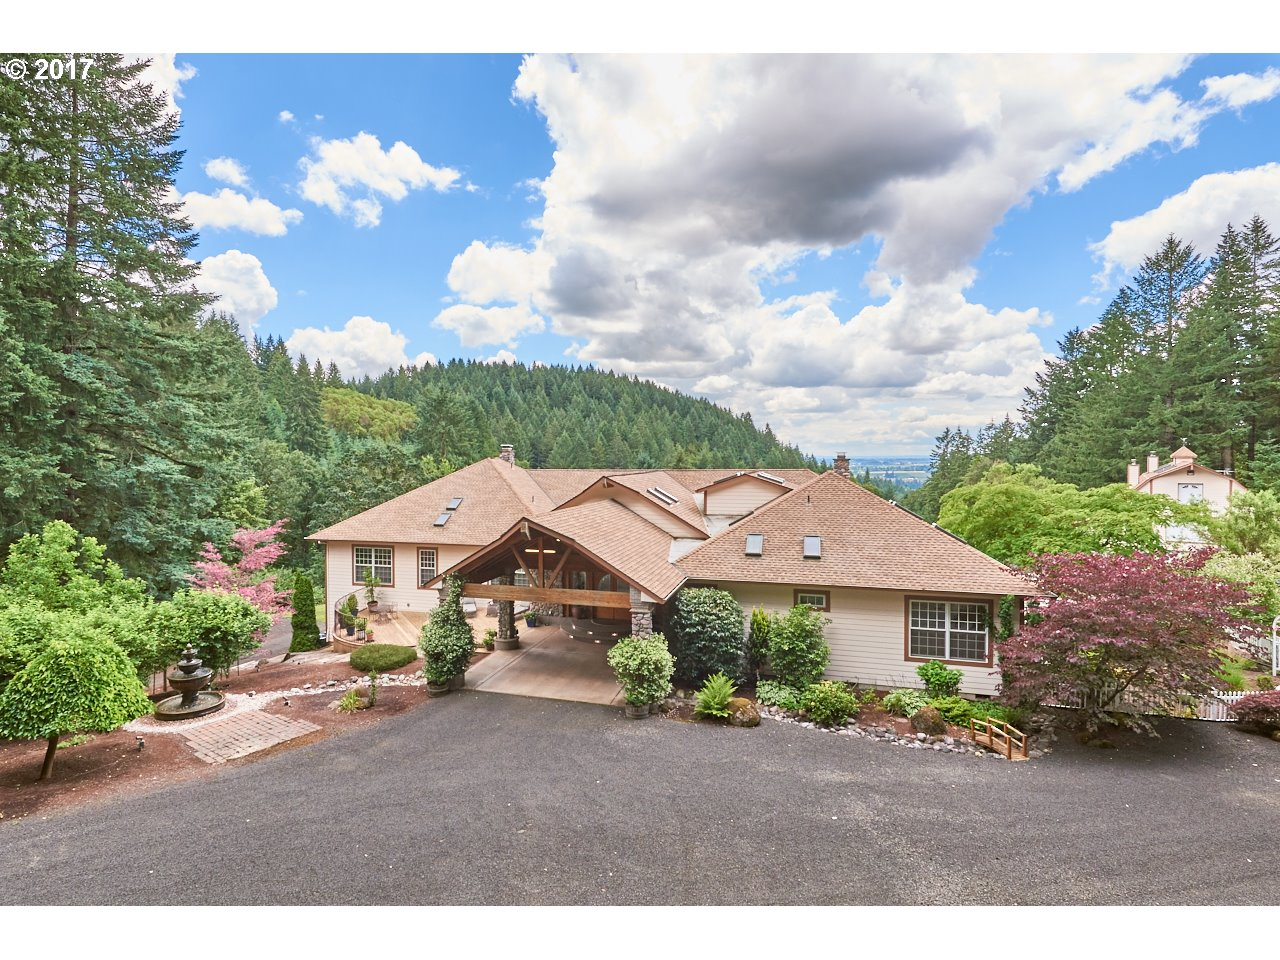 32520 NE CORRAL CREEK RD, Newberg OR 97132